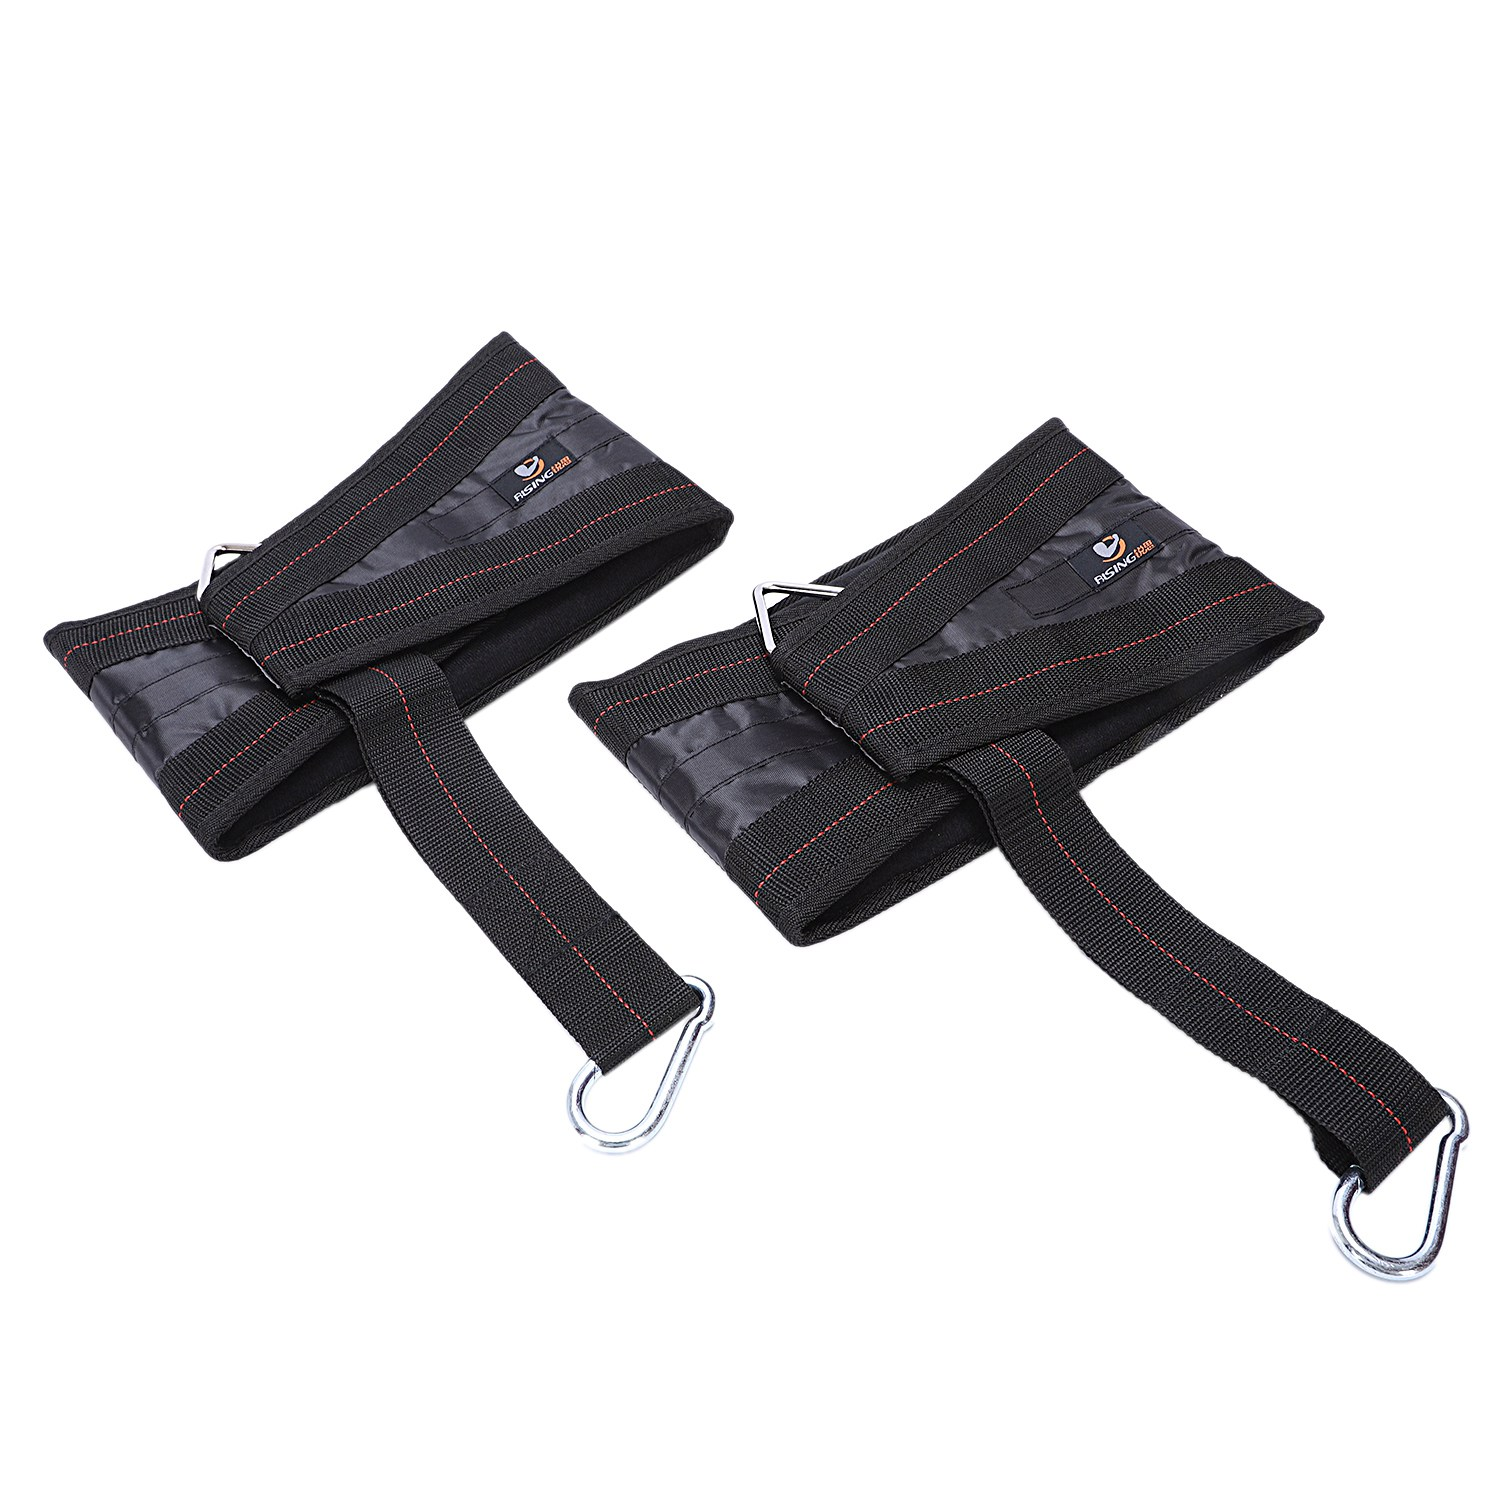 Cheap Price Fitness Padded Hanging Ab Straps Pull Up Abdominal Belt Cross Fit Belly 2-pack Pullup Carver Gym Workout Training Equipment